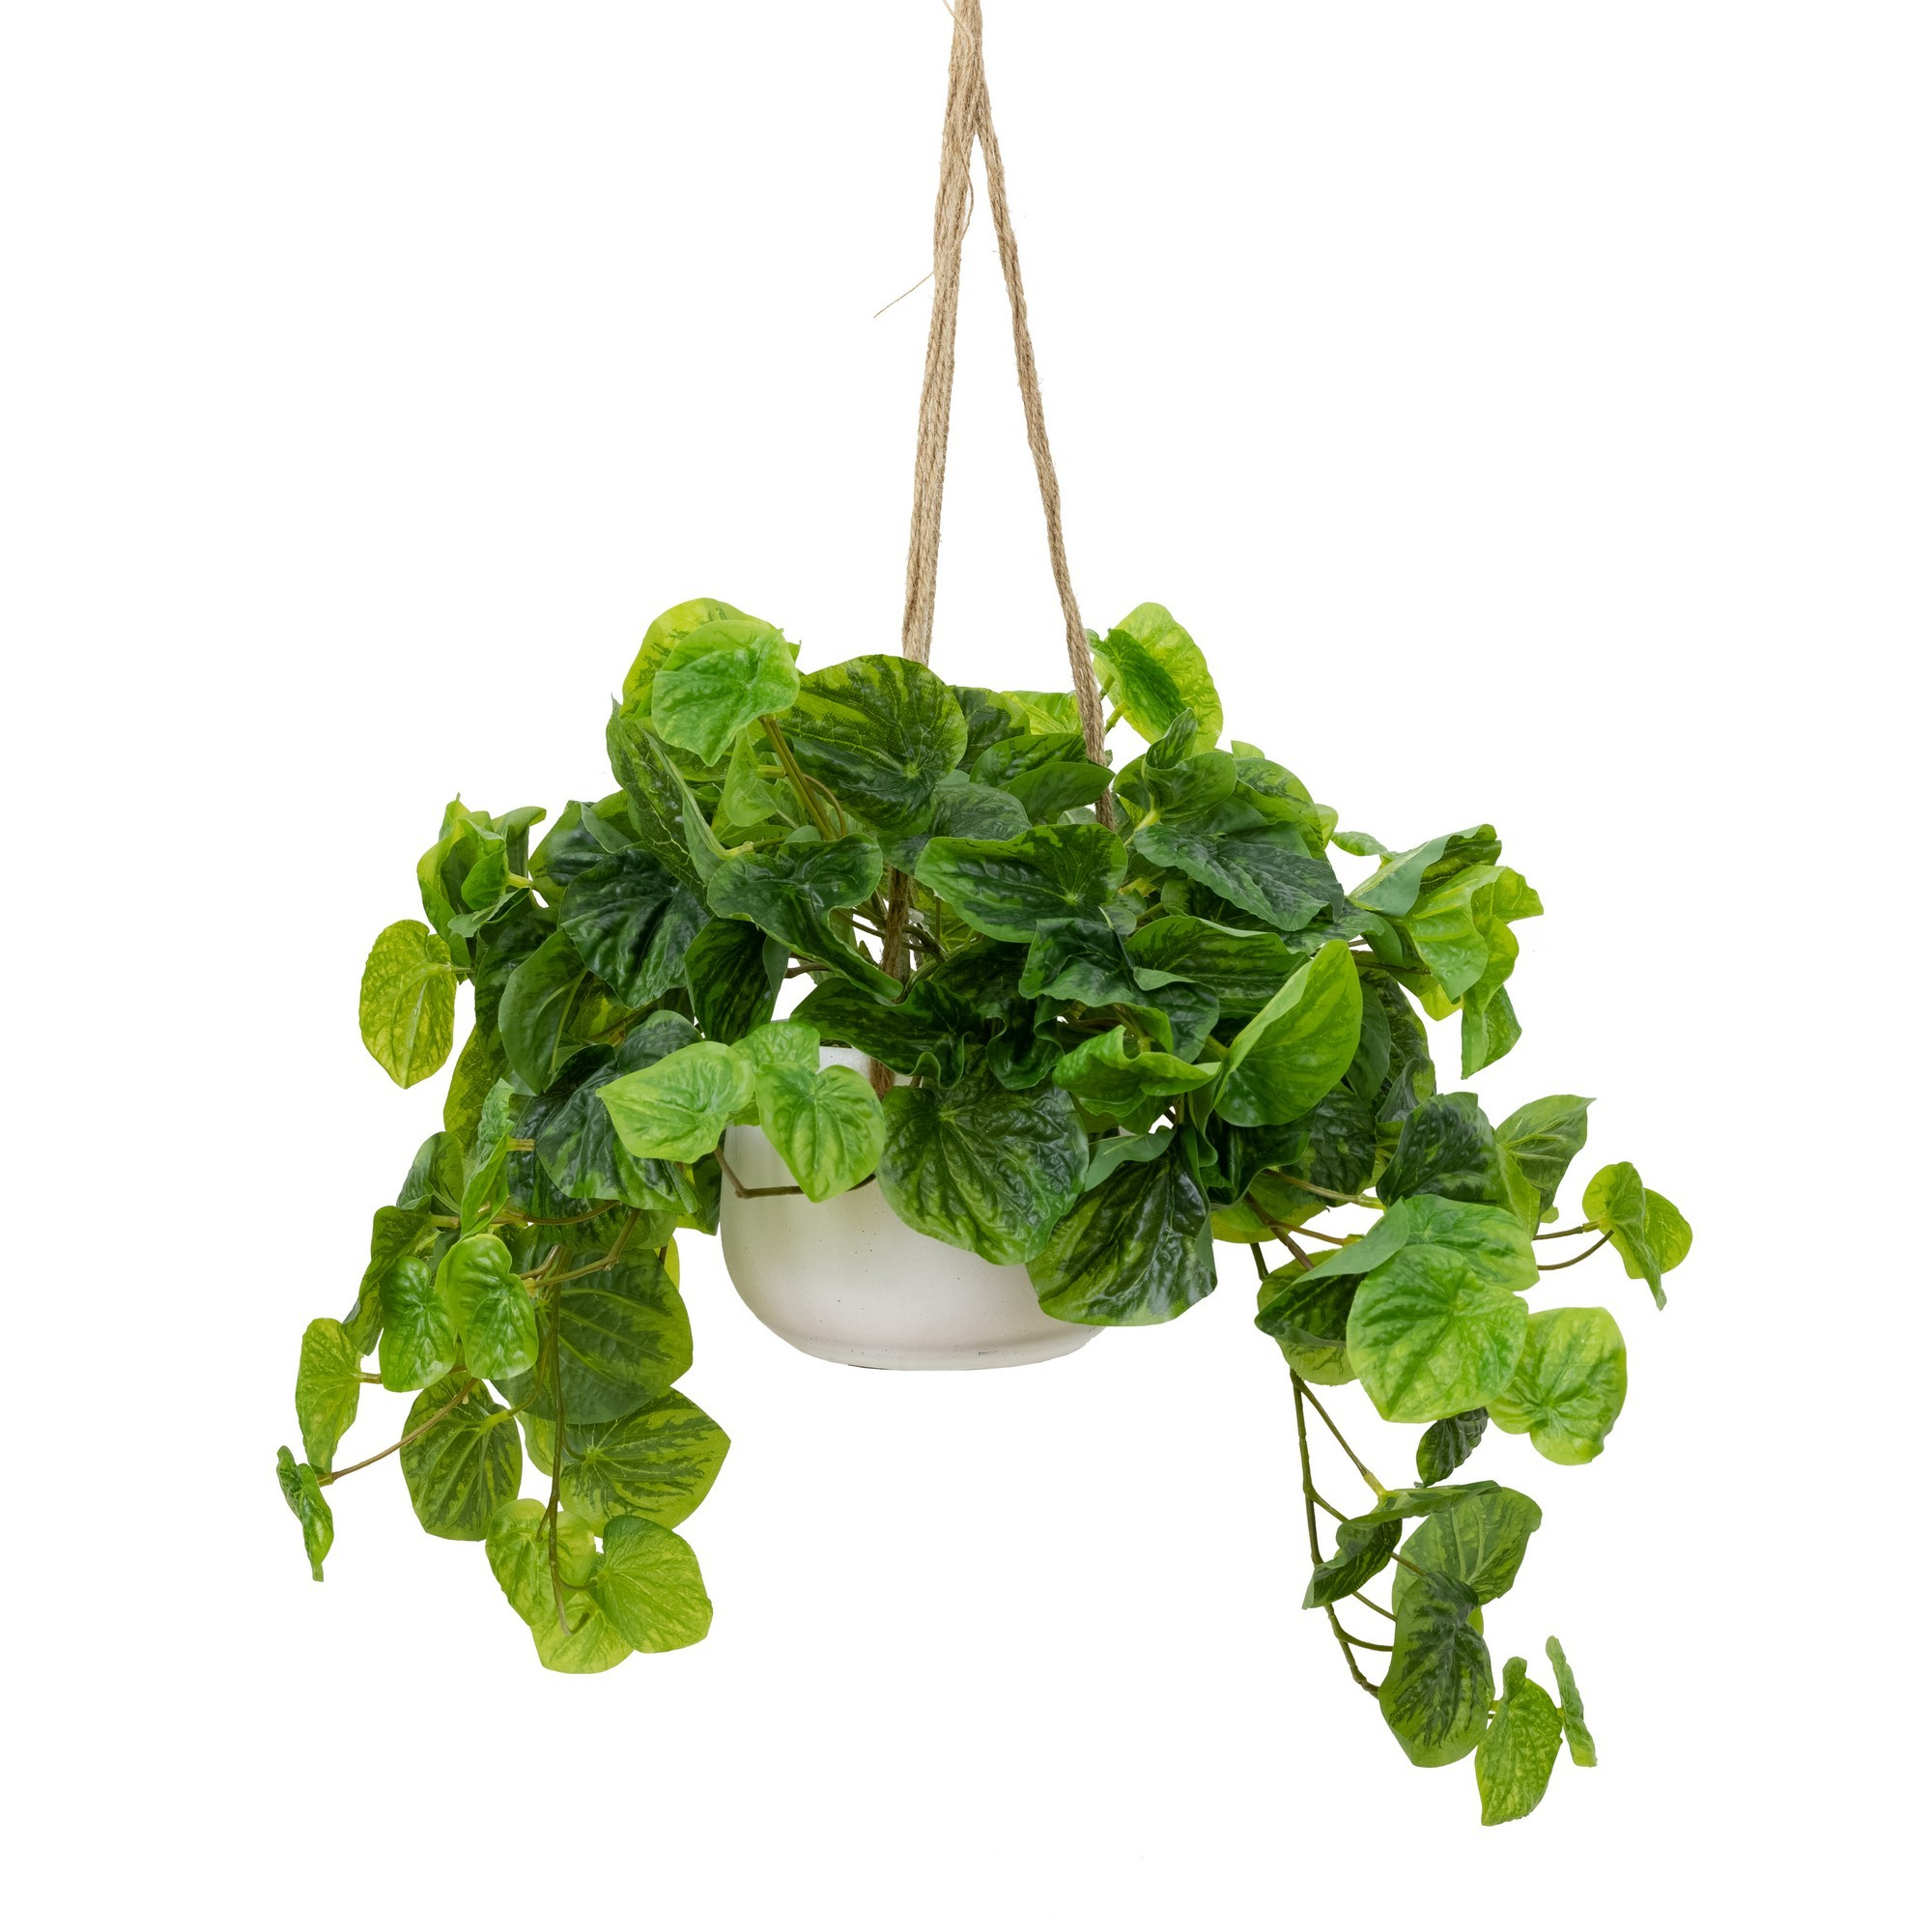 Glamorous Fusion Artificial Peperomia Caperata in Hanging Pot, 72cm, Green